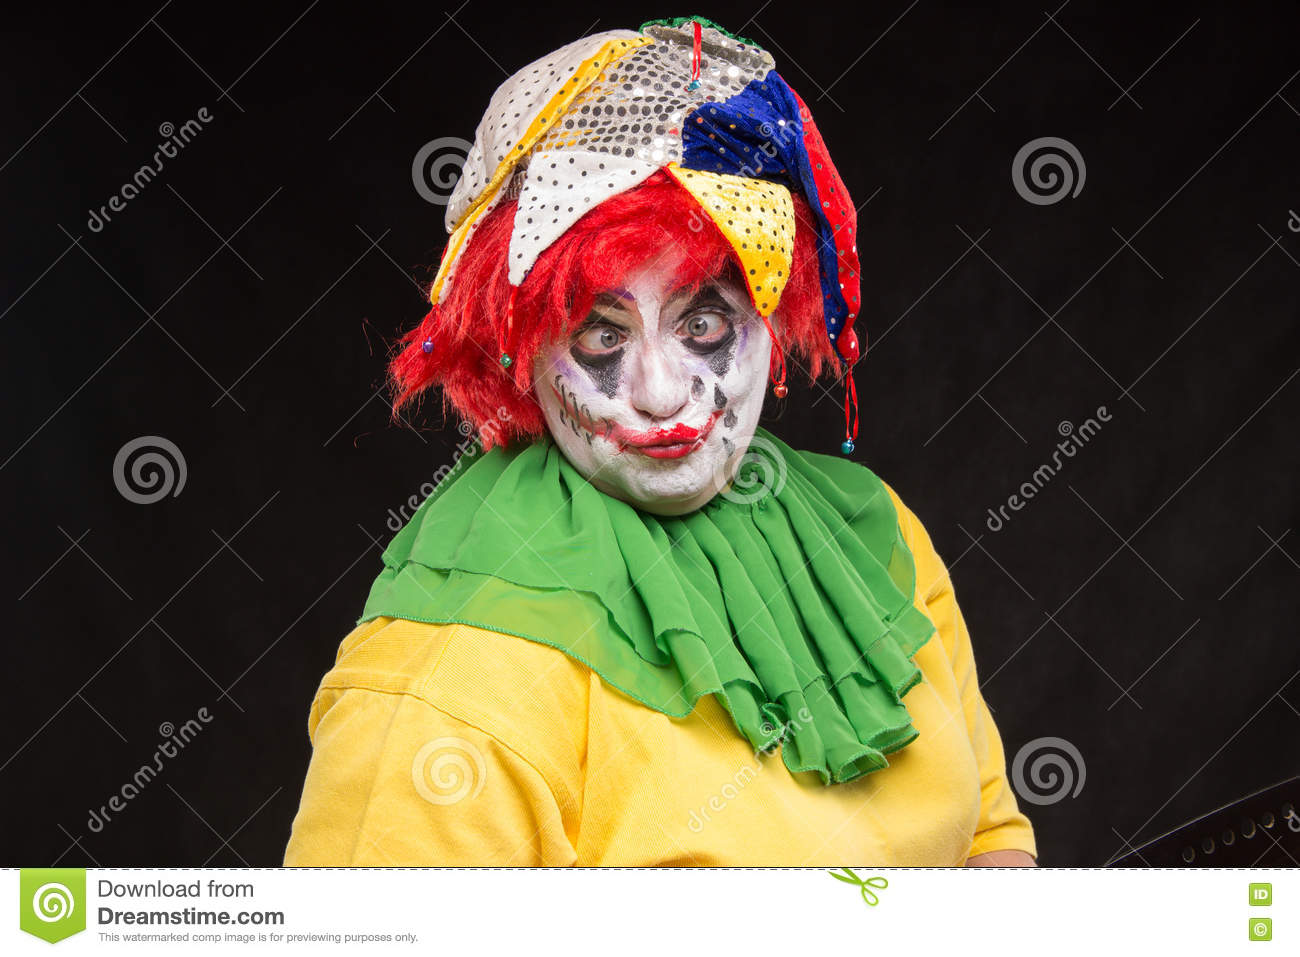 scary clown joker with a smile and red hair on a black backgroun